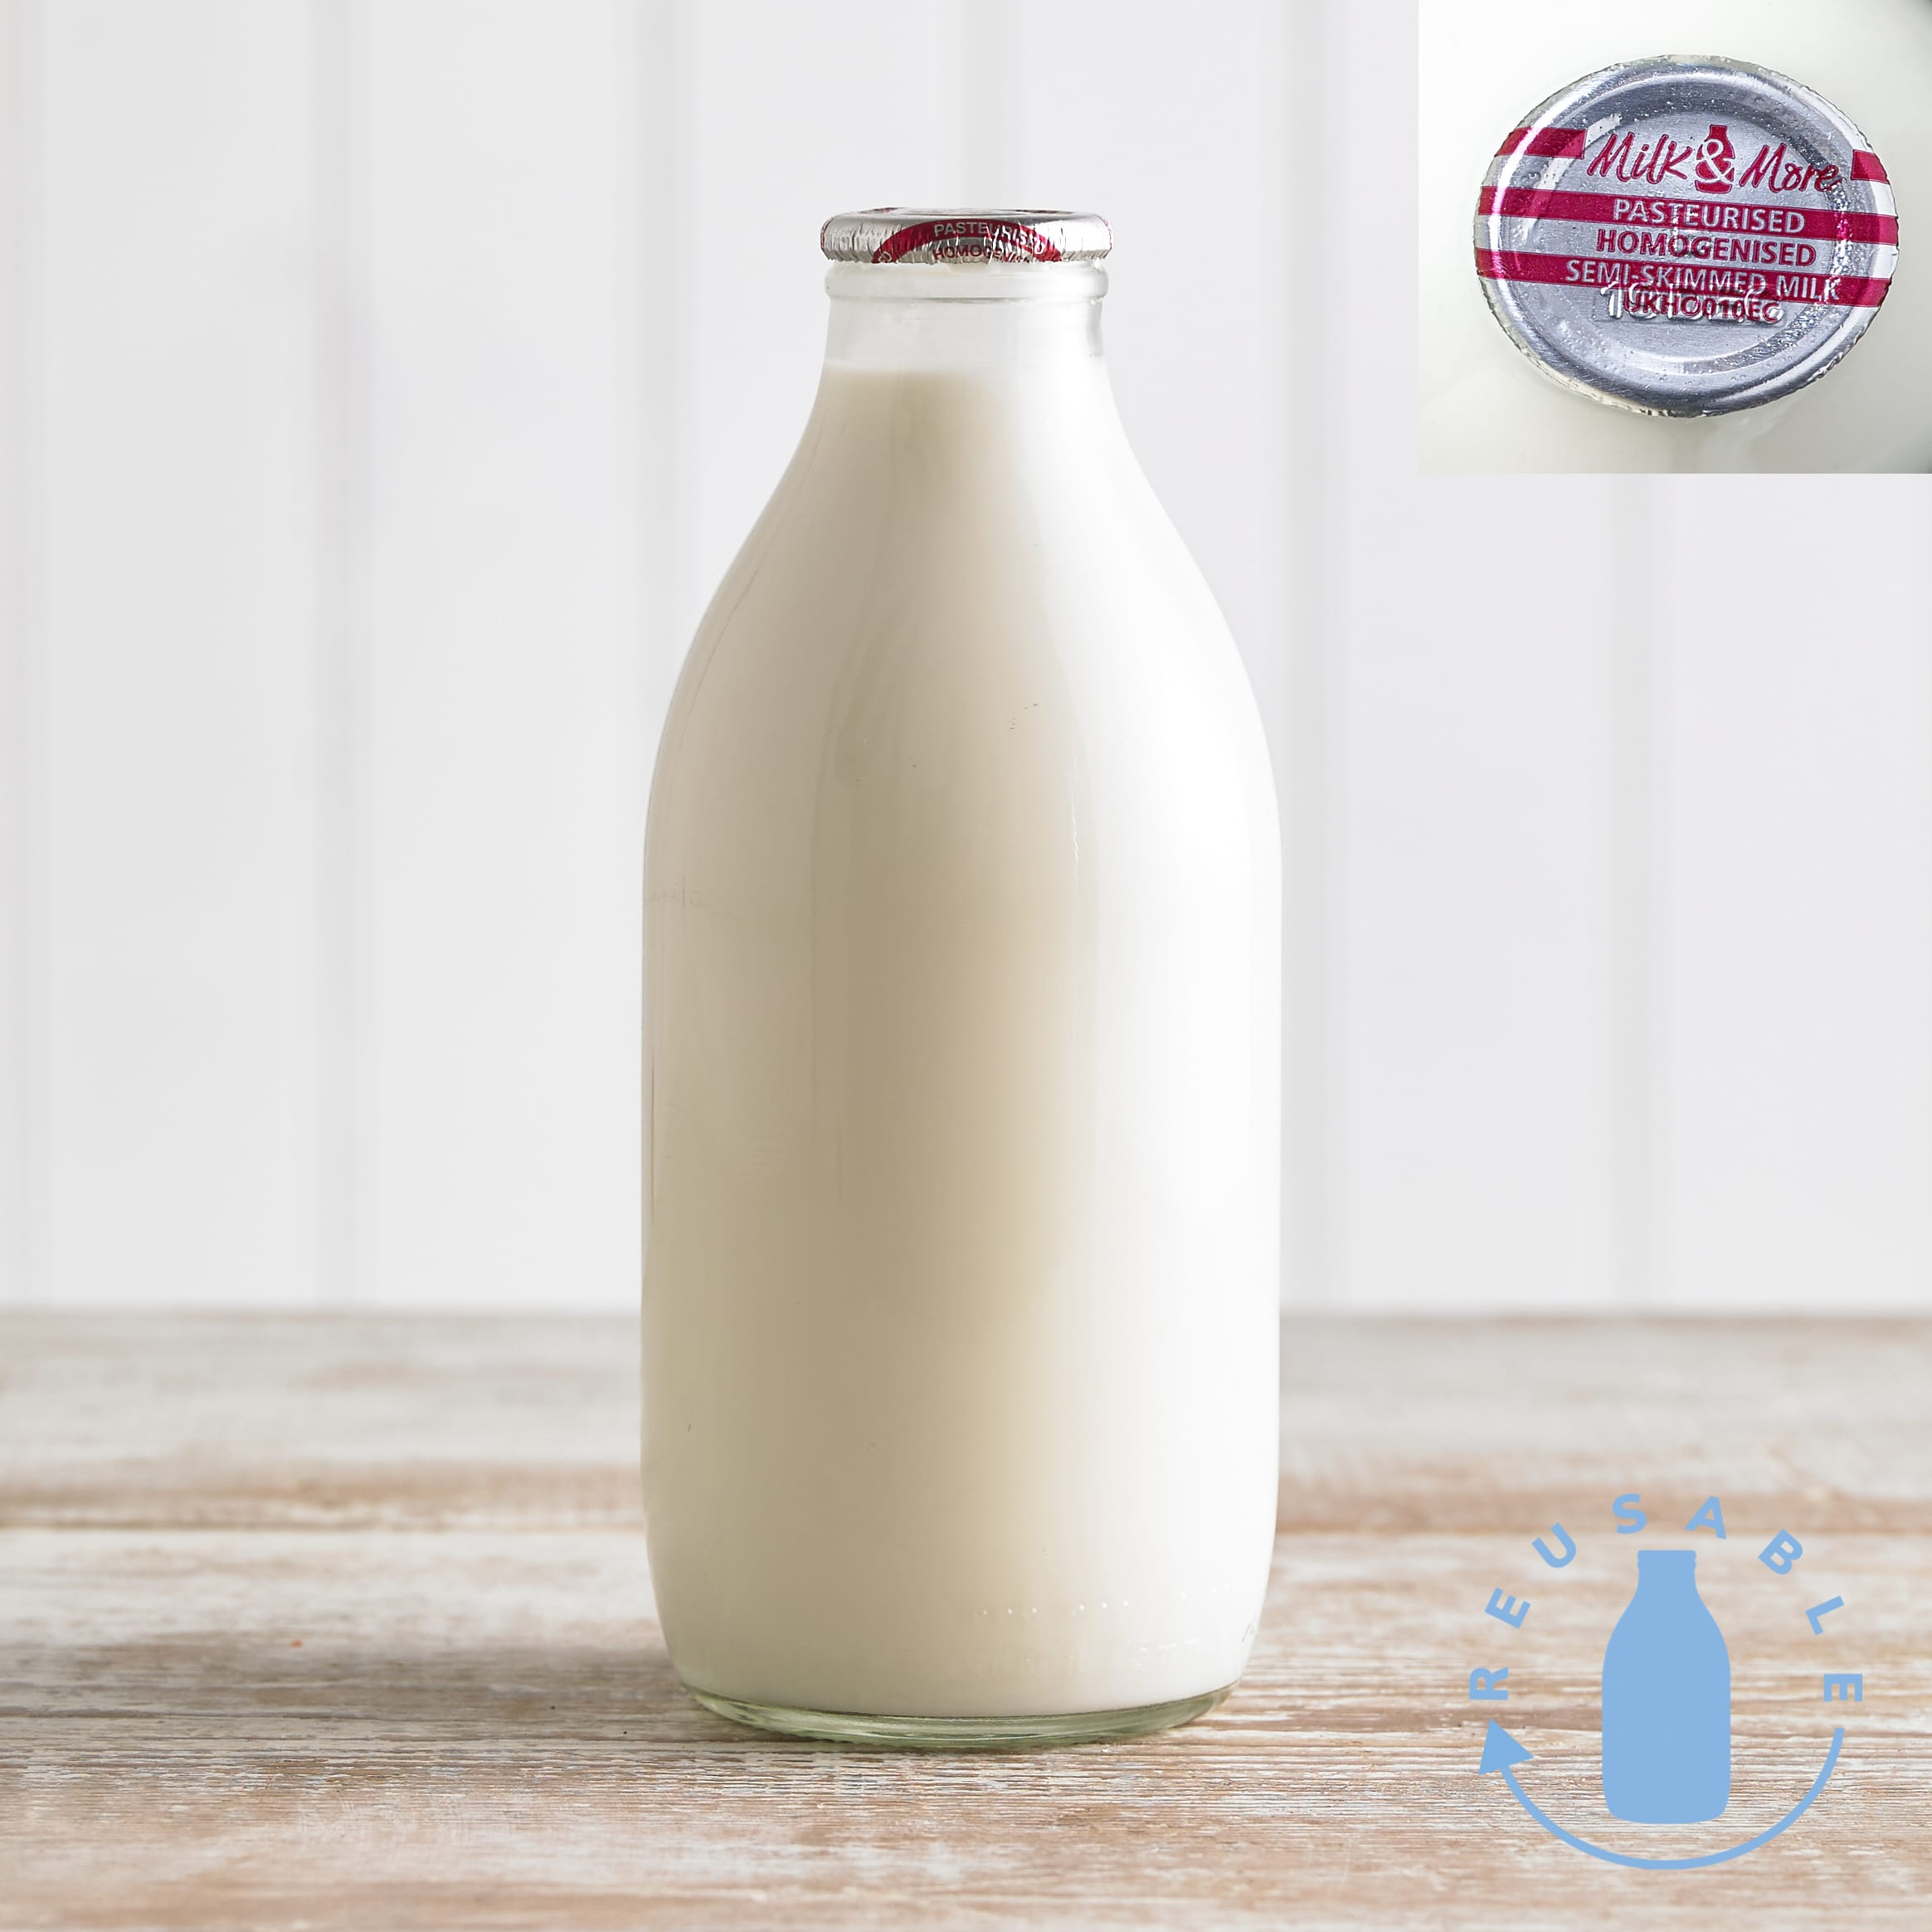 Milk Amp More Semi Skimmed Milk In Glass 568ml 1pt Dairy